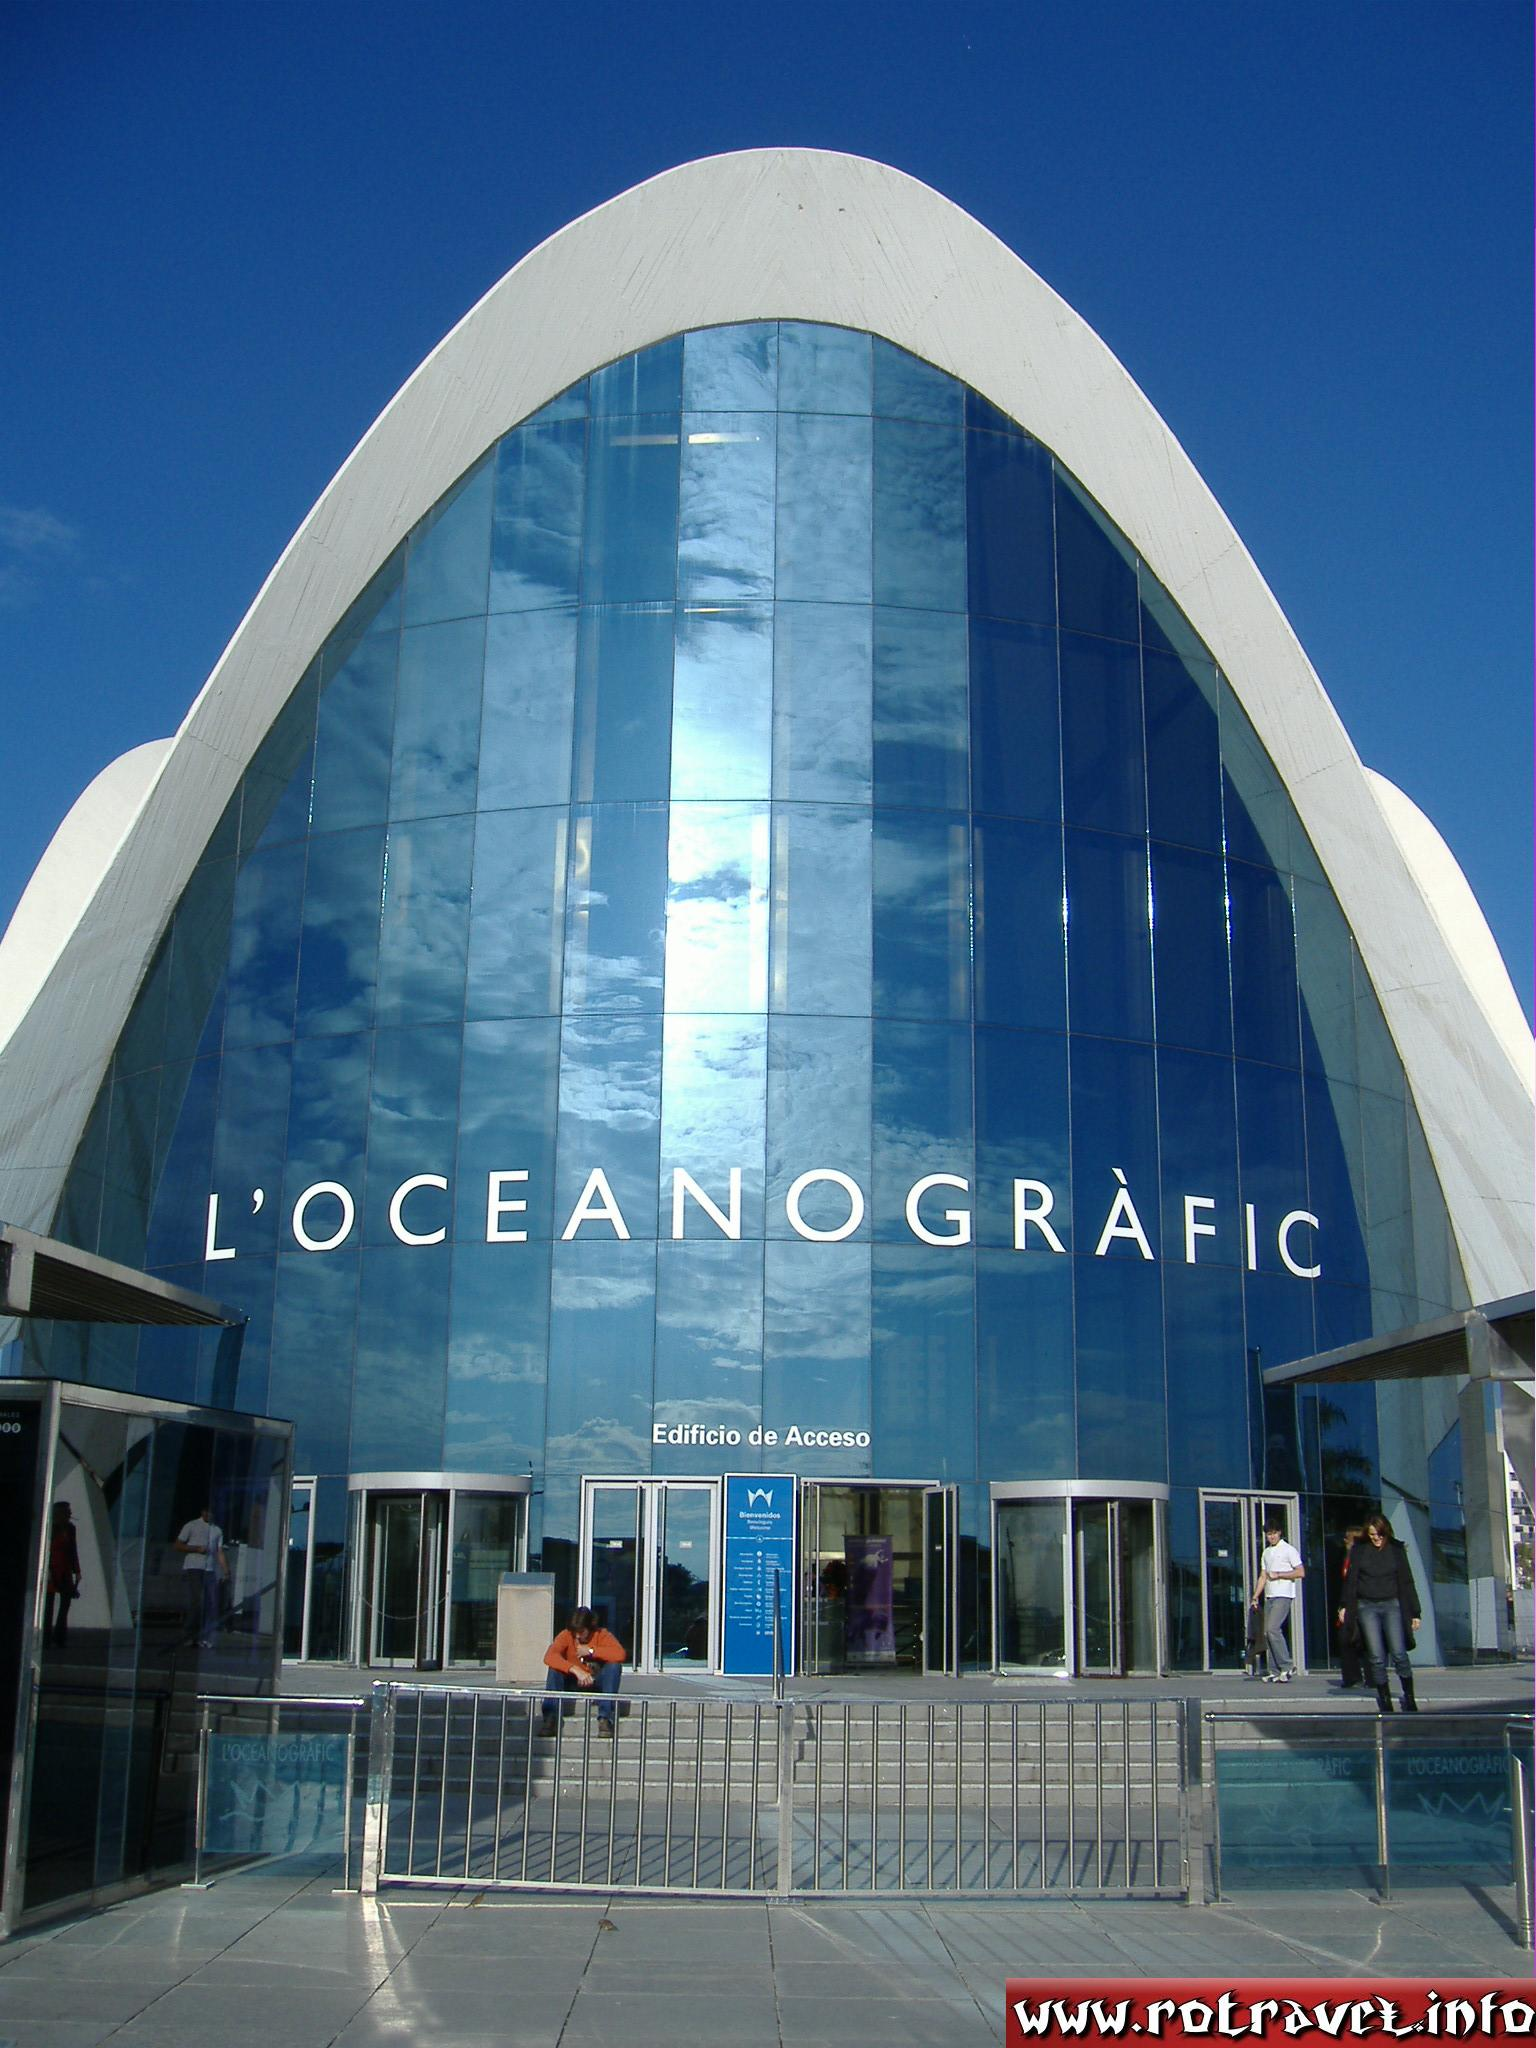 L'Oceanogràfic — Open-air oceanographic park (entrance). Here you can see the prices of tickets: http://www.cac.es/cac/informacion/tarifas)